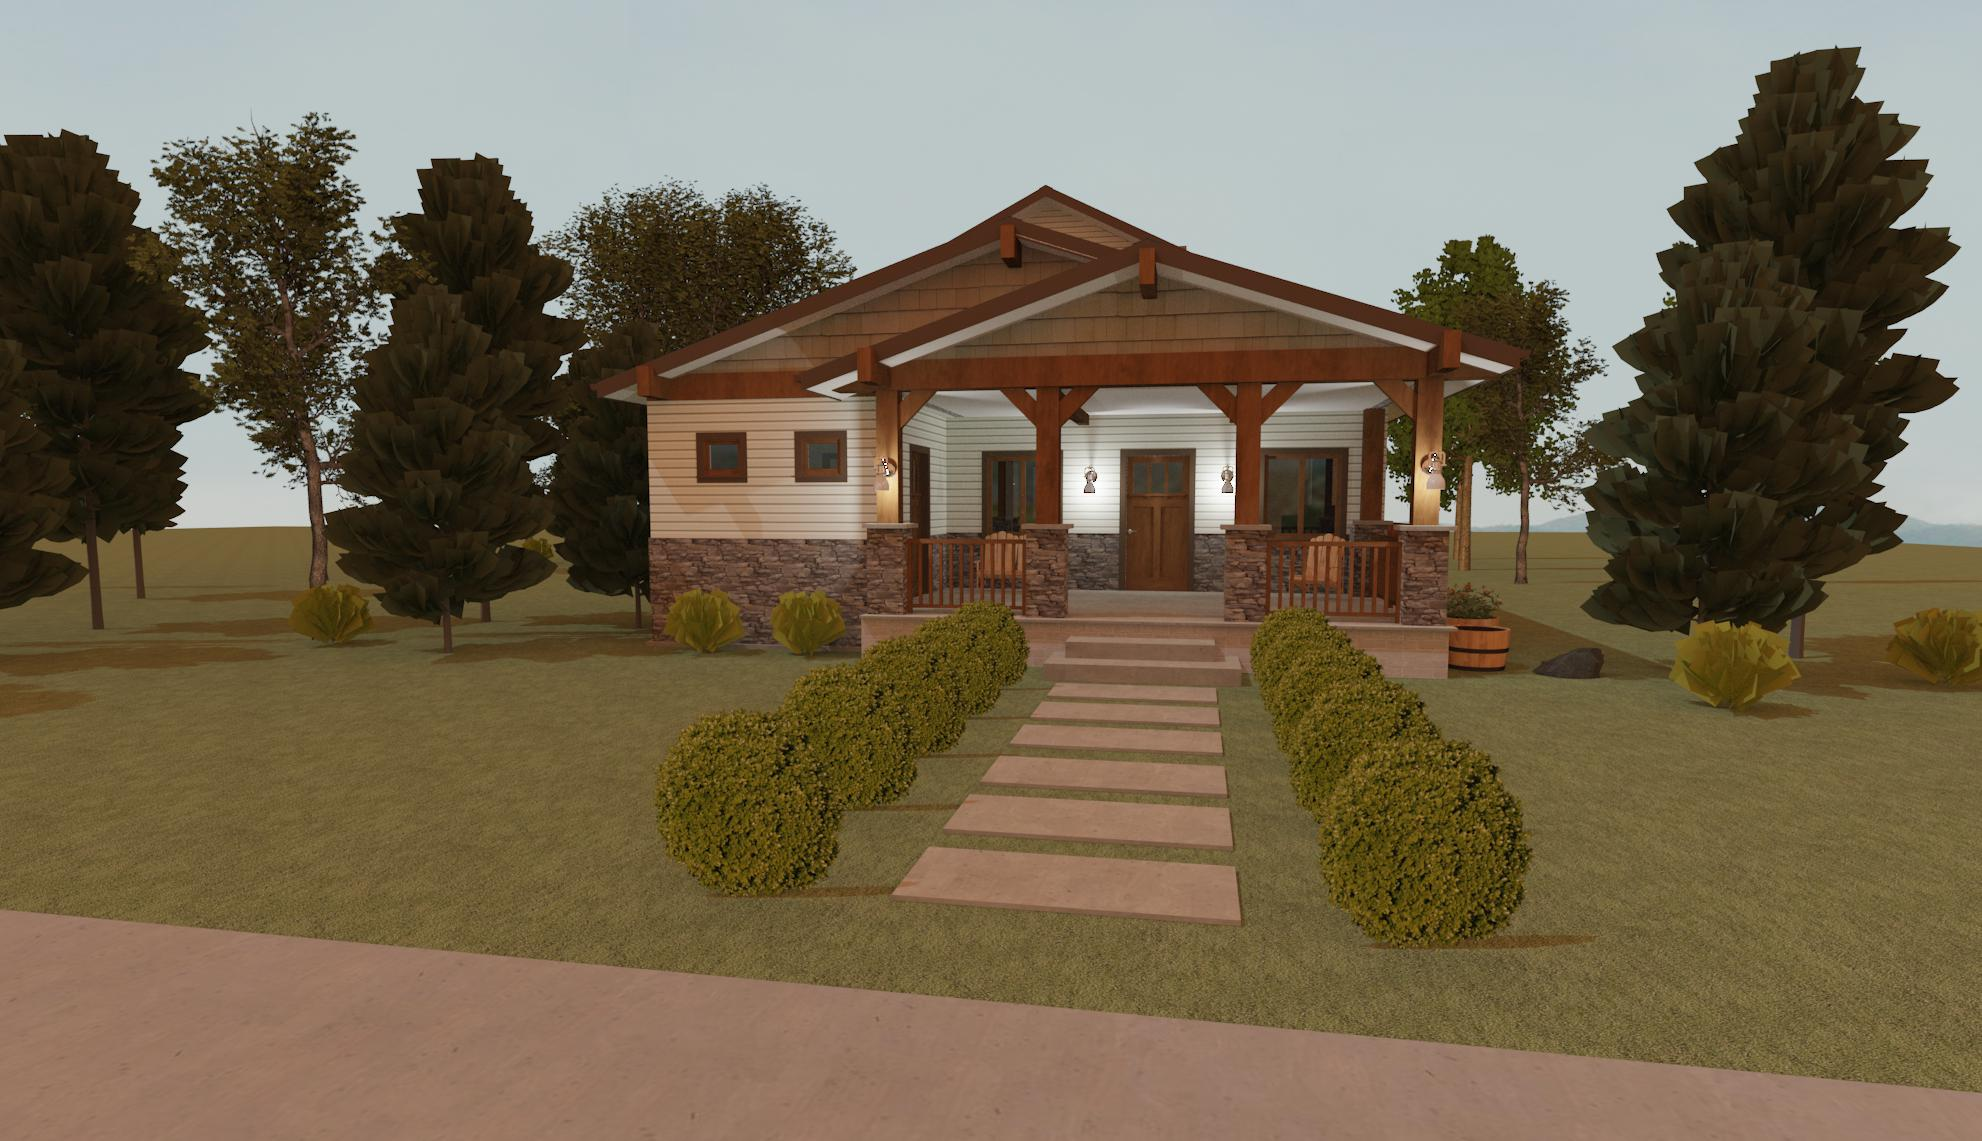 Heldenbrand Camera - front entry 02 RAY TRACED 02.jpg